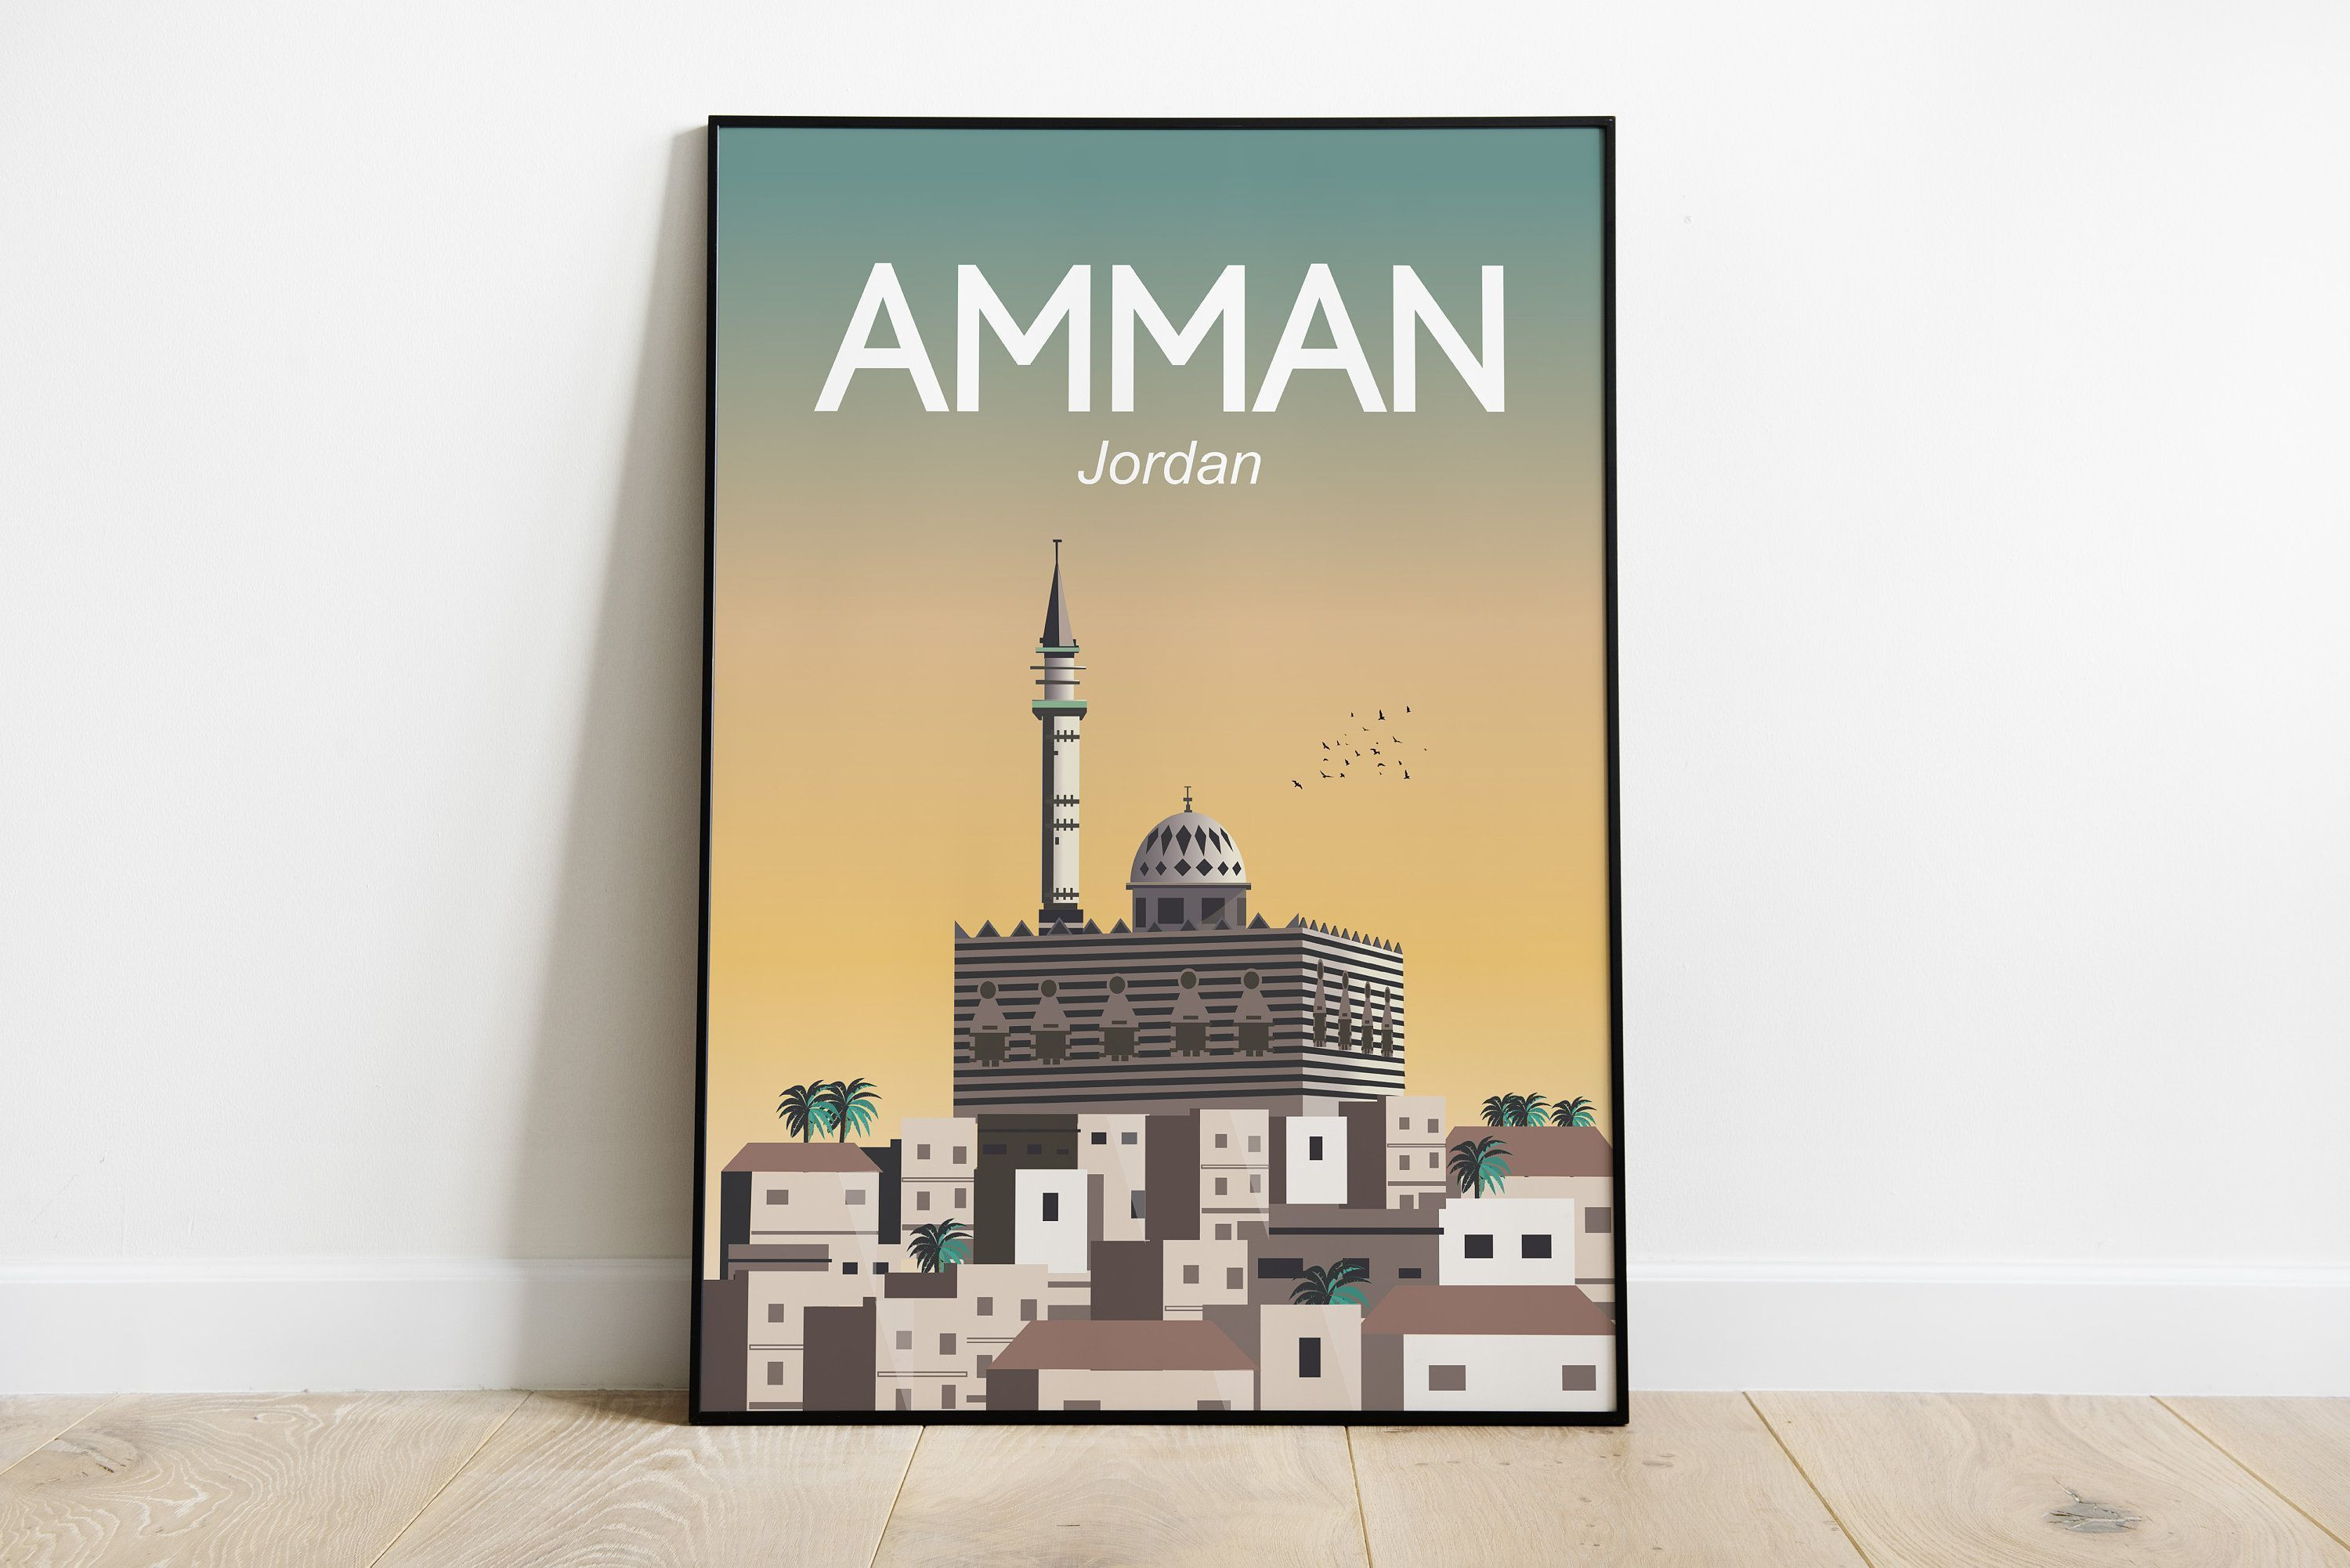 Amman Jordan Travel Poster wall art poster print ! Sizes: (inches) 8x10 12x16 18x24 24x36 #ammanjordan Amman Jordan Travel Poster wall art poster print ! Sizes: (inches) 8x10 12x16 18x24 24x36 #ammanjordan Amman Jordan Travel Poster wall art poster print ! Sizes: (inches) 8x10 12x16 18x24 24x36 #ammanjordan Amman Jordan Travel Poster wall art poster print ! Sizes: (inches) 8x10 12x16 18x24 24x36 #ammanjordan Amman Jordan Travel Poster wall art poster print ! Sizes: (inches) 8x10 12x16 18x24 24x3 #ammanjordan